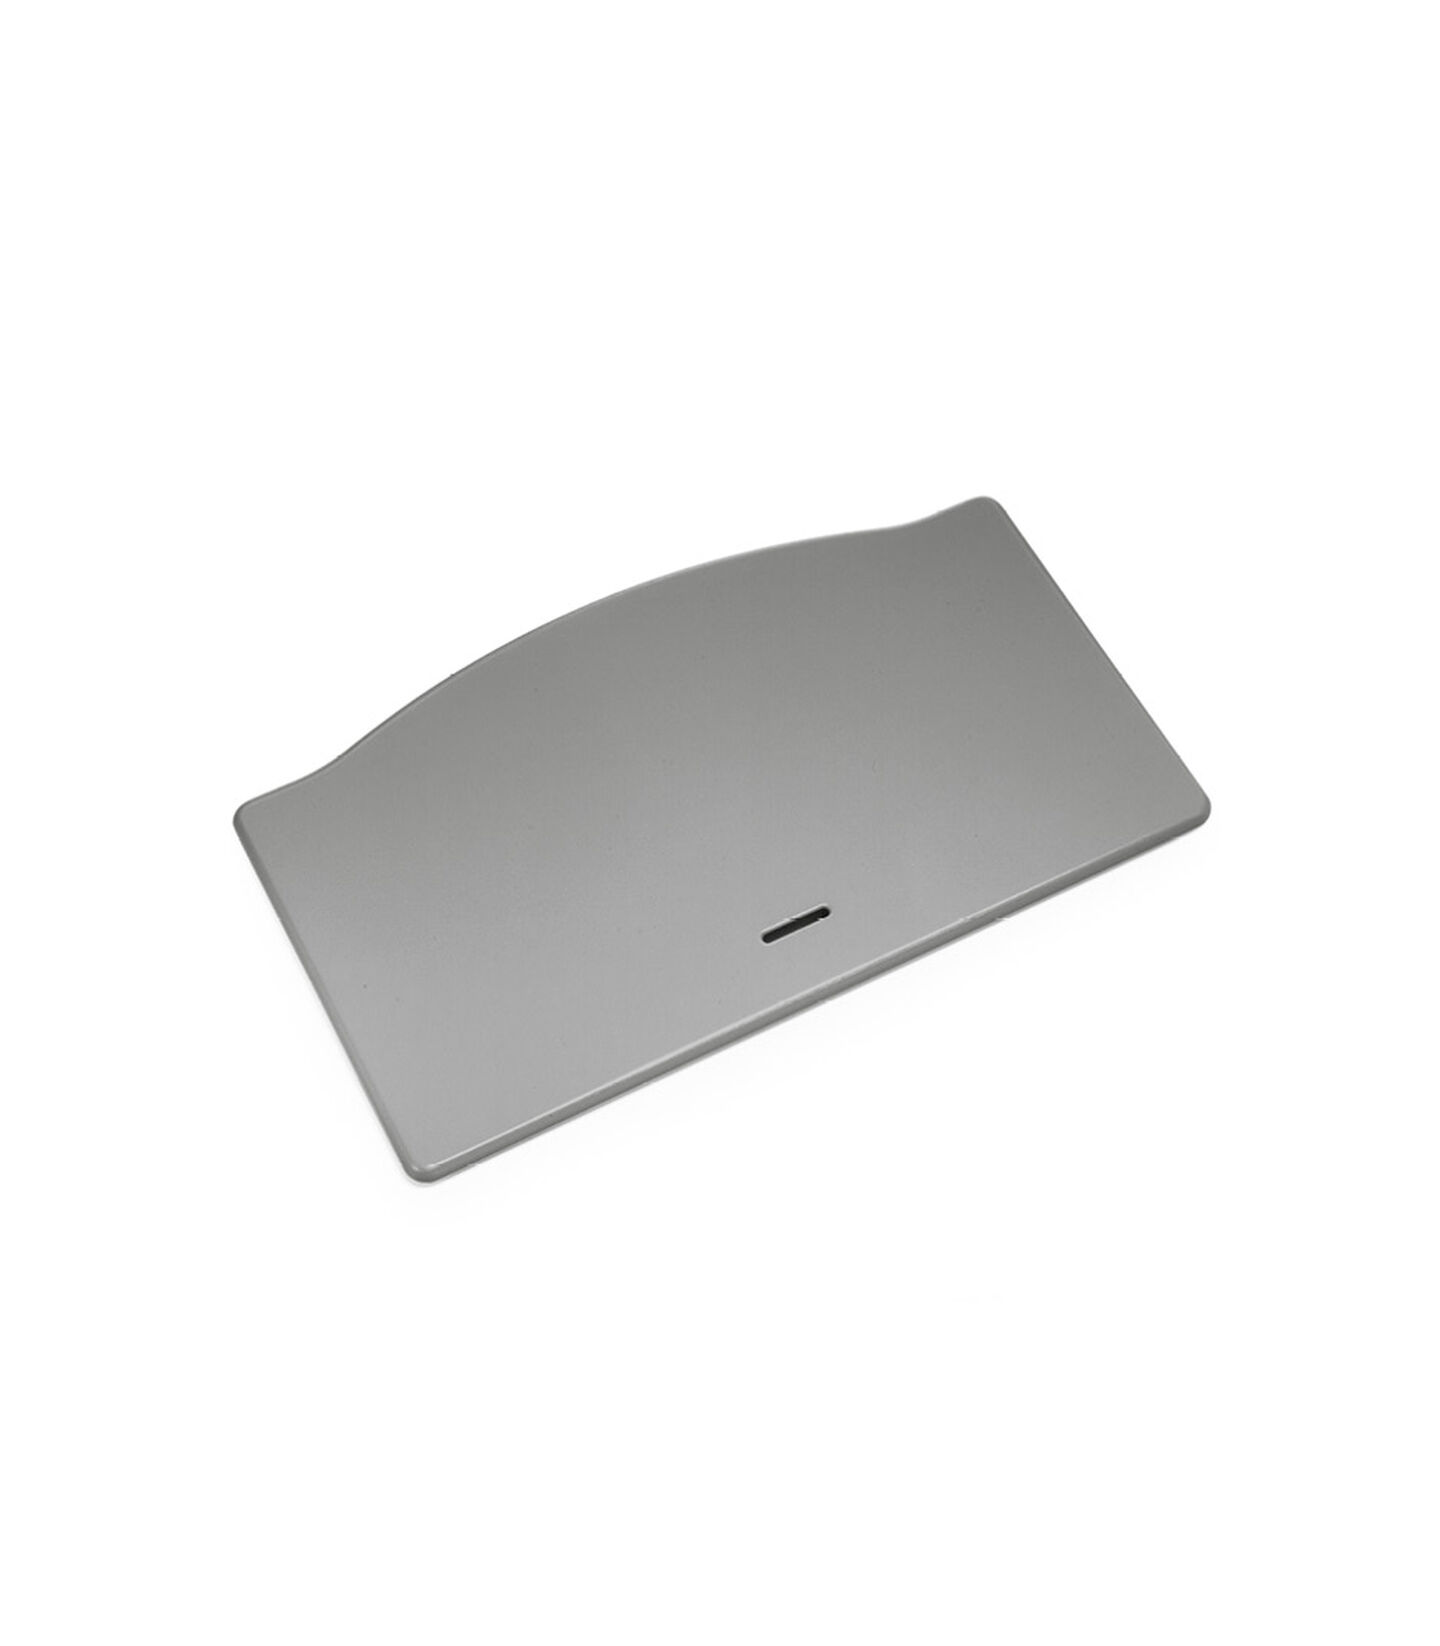 108828 Tripp Trapp Seat plate Storm grey (Spare part). view 2